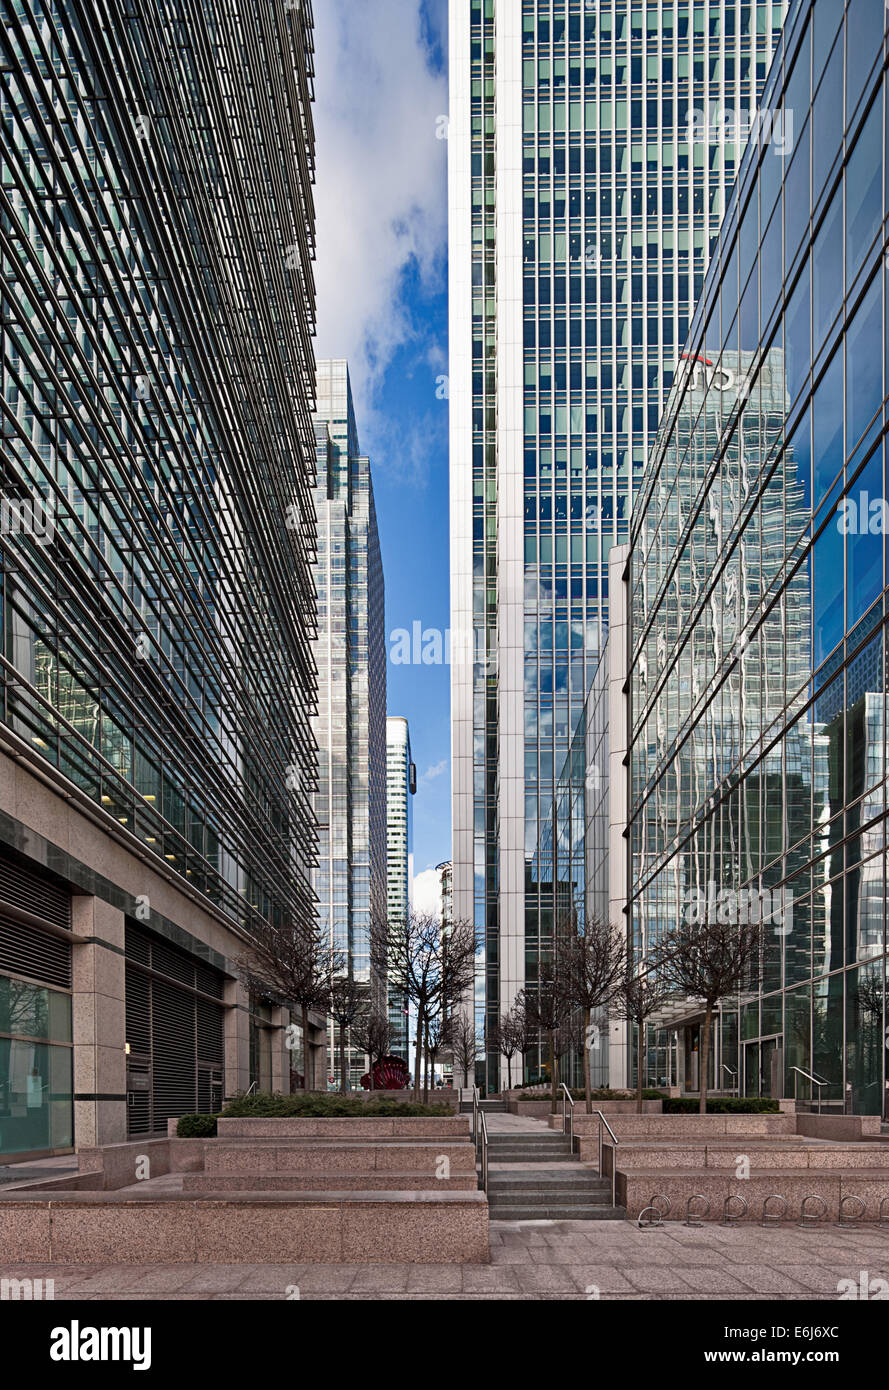 Streetscape in  Canary Wharf, Docklands. - Stock Image